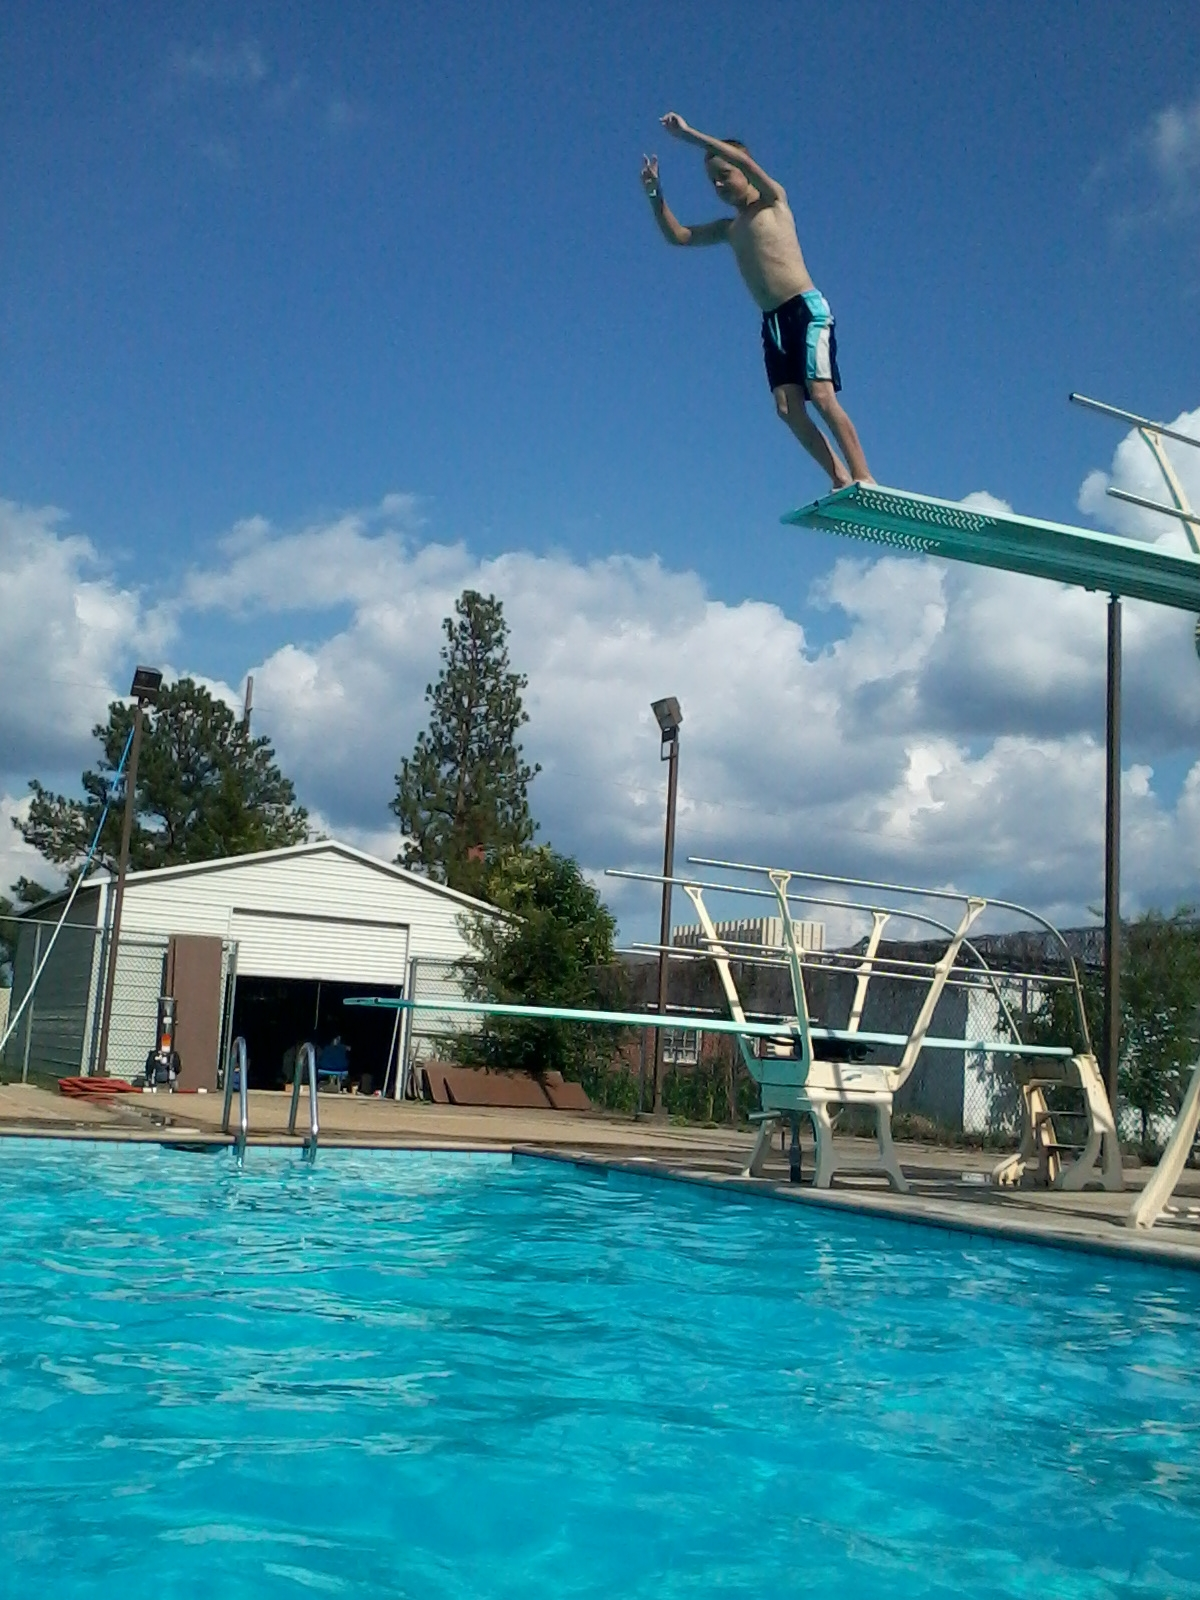 Gallery For > Diving Off A High Diving Board